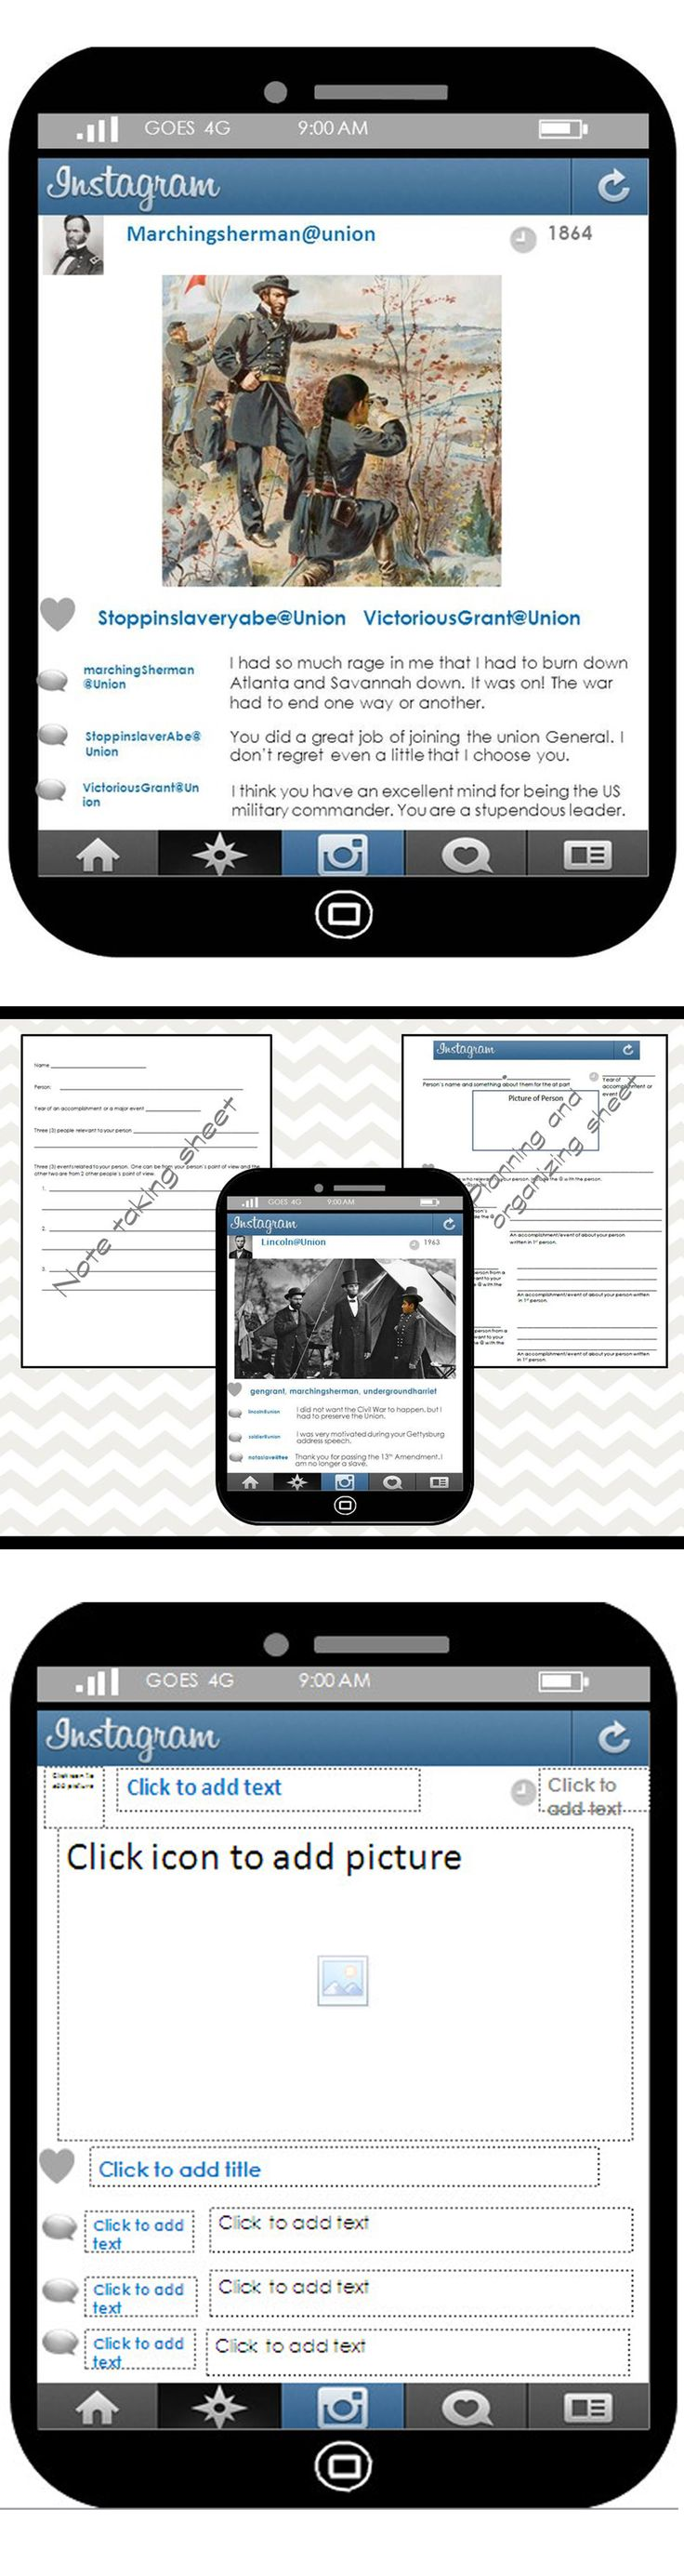 Using the concept of social media is a great way to interest and engage your students. The Instagram and Twitter template allows students to add text and pictures but keeps the design locked so that they won't mistakenly move or delete background.